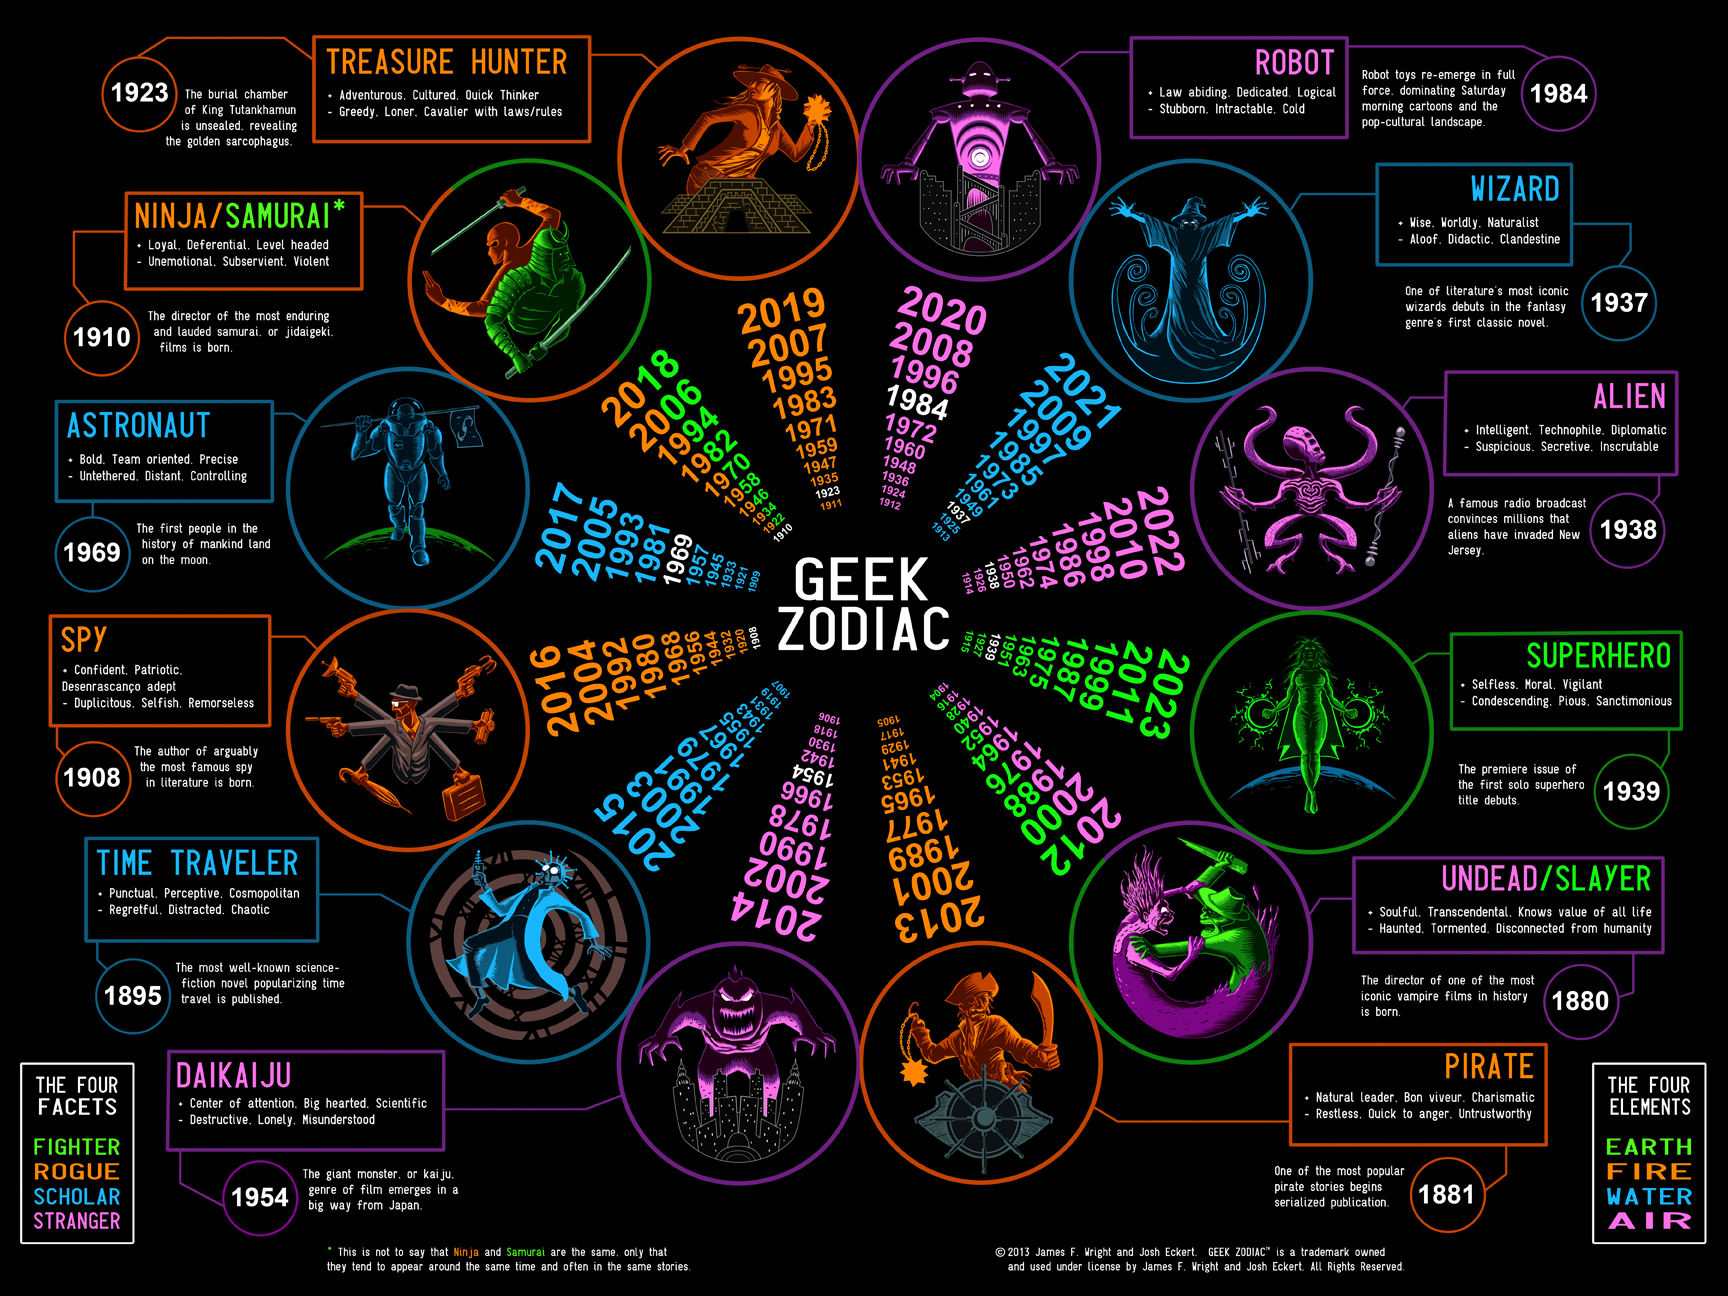 Robot Wizard Ninja Whats Your Sign The Geek Zodiac Is Here To